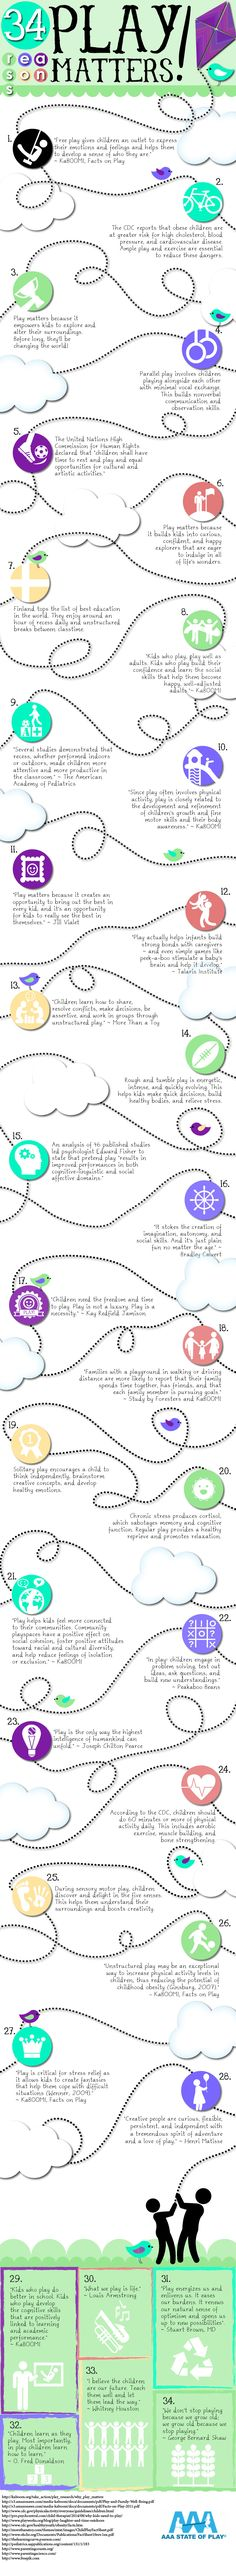 Why play is important for children